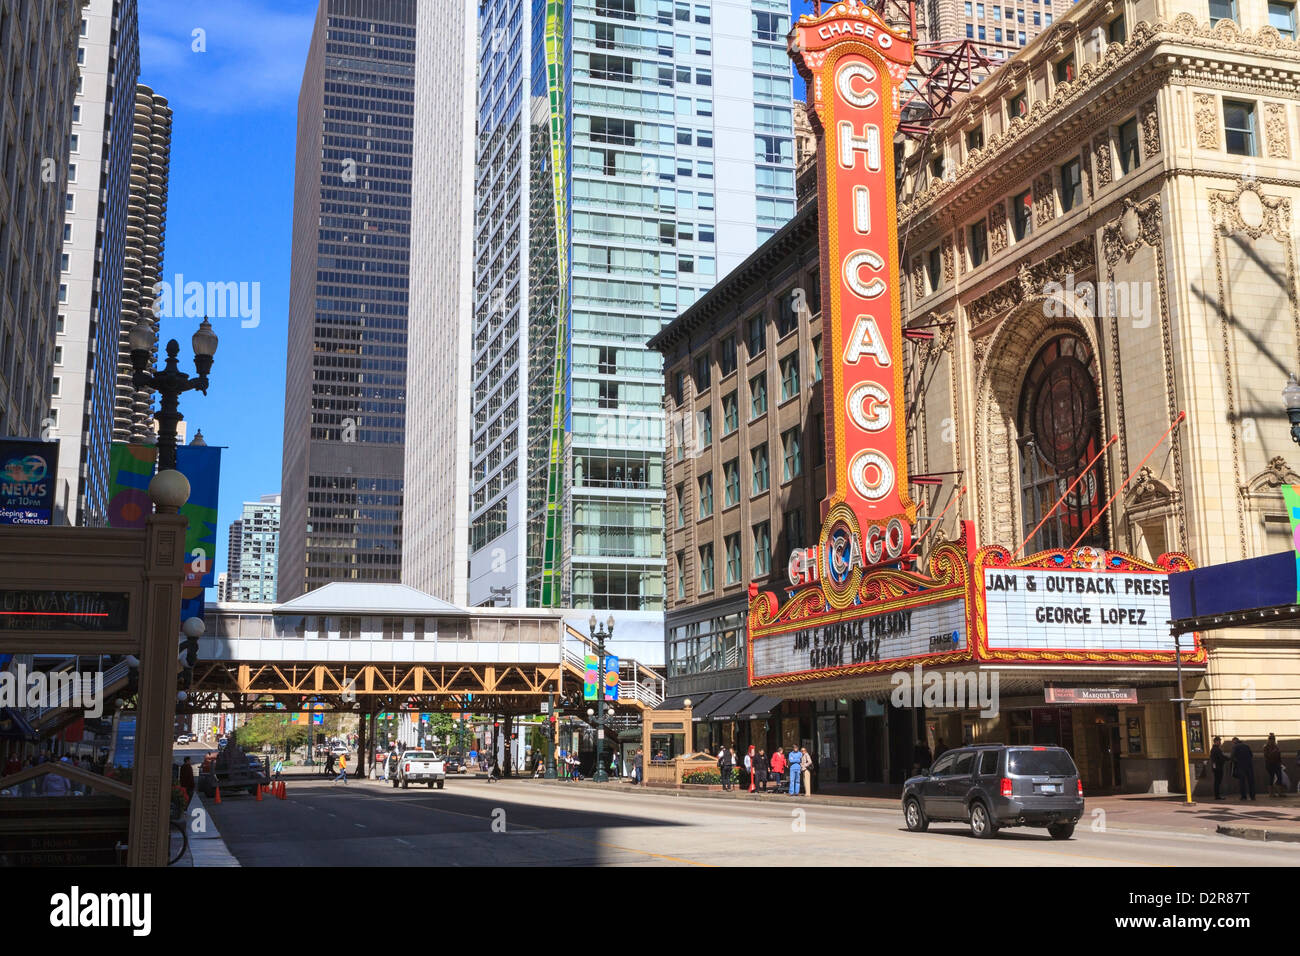 Chicago Theater, State Street, Chicago, Illinois, United States of America, North America - Stock Image